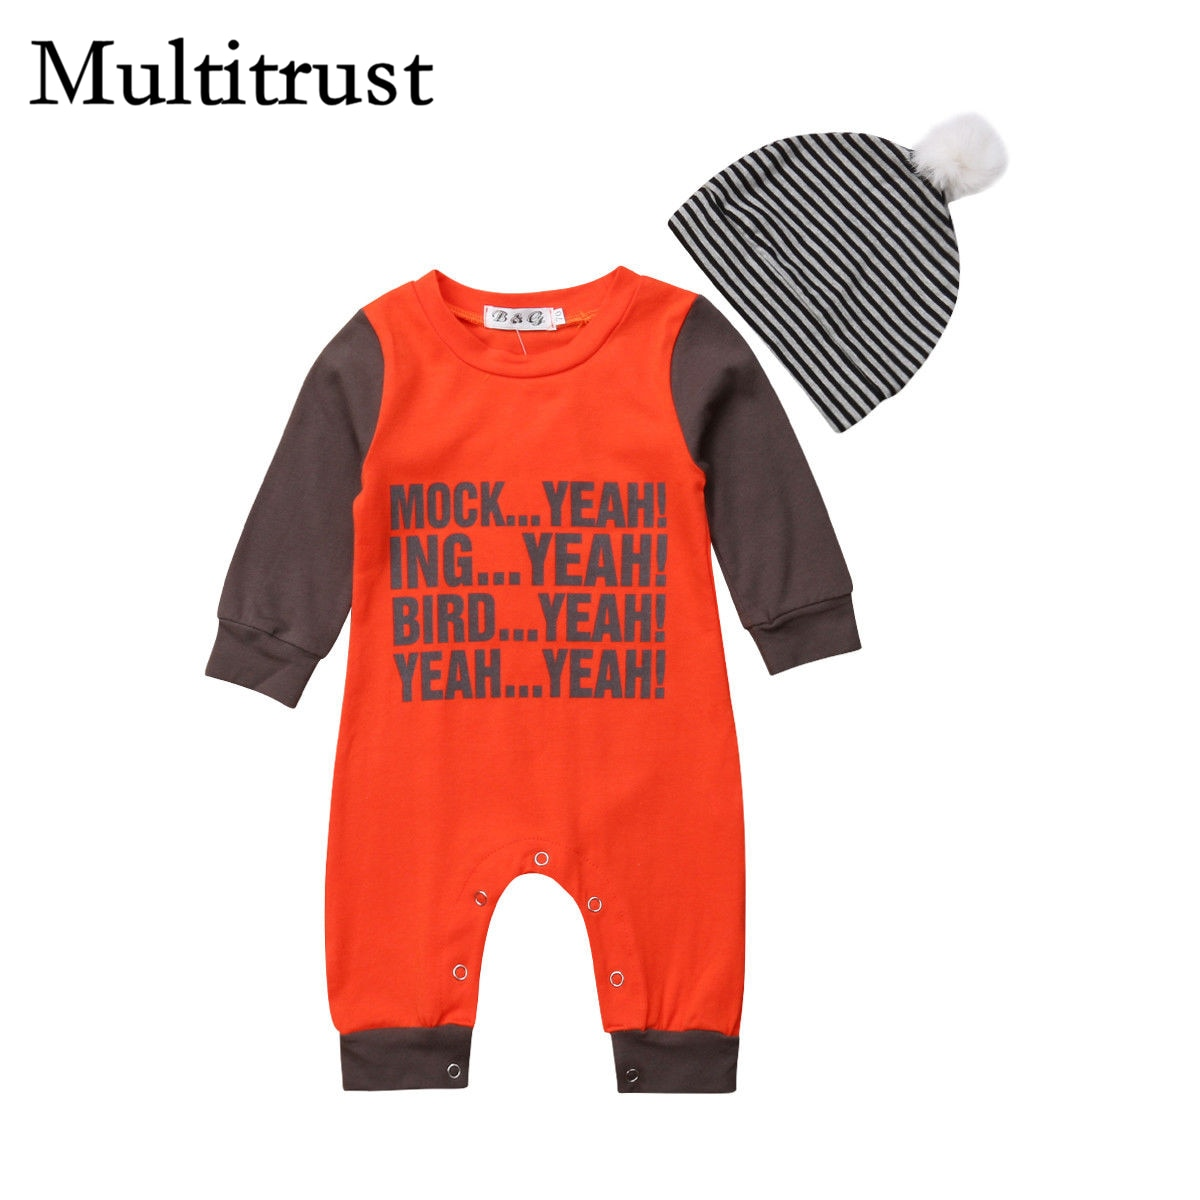 2018 Multitrust Brand Newborn Baby Boy Girl Jumpsuit Letters Romper+Striped Caps Patchwork Clothes Autumn Orange Outfits-eosegal